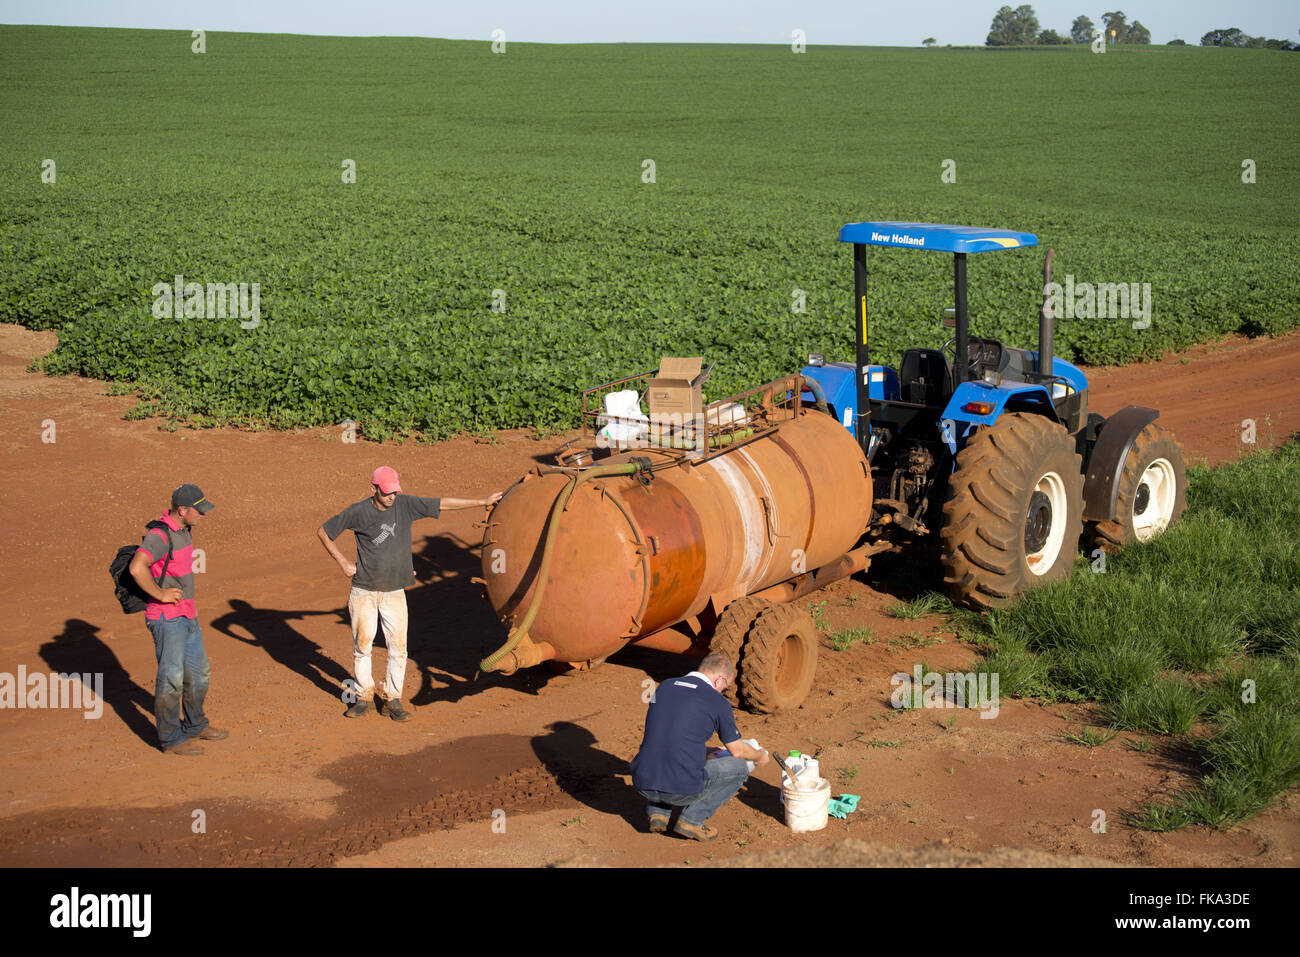 Tractor with chemicals for application pool in soybean plantation - Stock Image